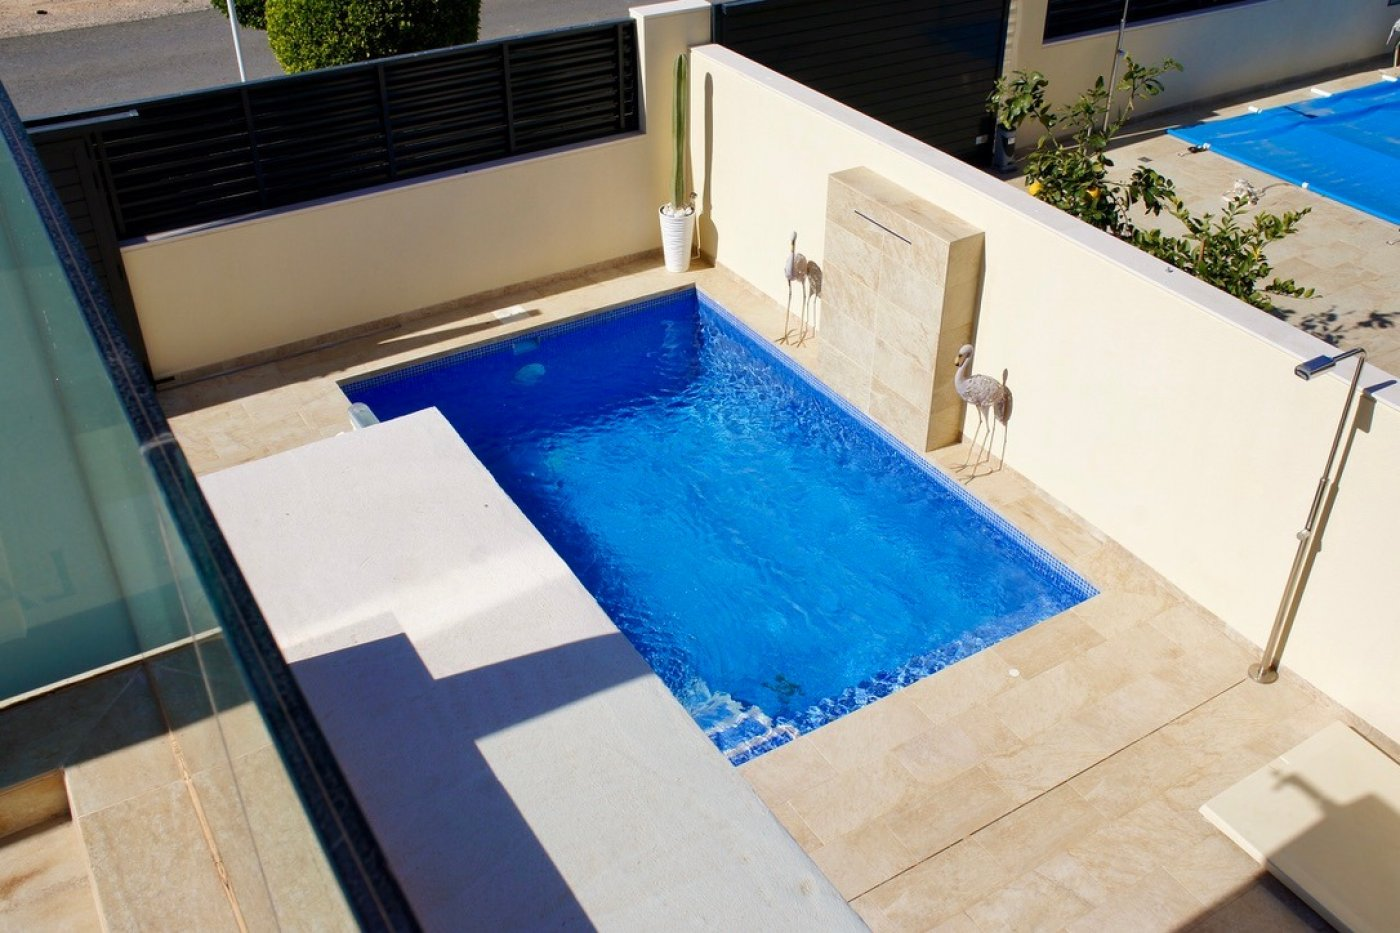 Gallery Image 20 of Key ready detached  3 bed, 3 bath villa with swimming pool at a very competitive price